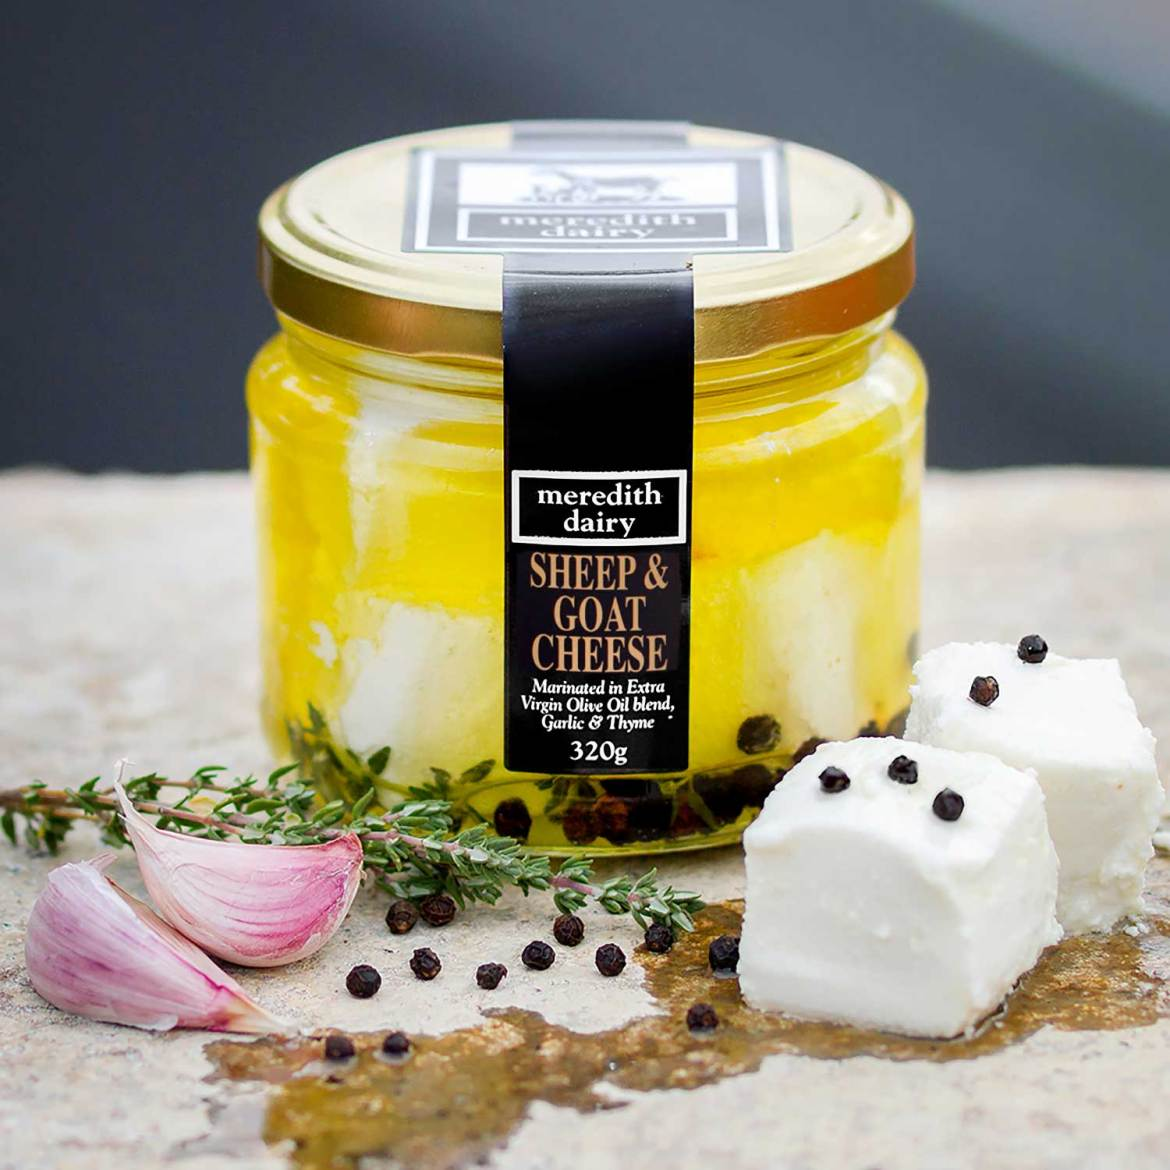 Meredith Dairy, Marinated Feta Sheep and Goat Milk Blend.<br /> Champion Fresh - Cheese &amp; Dairy